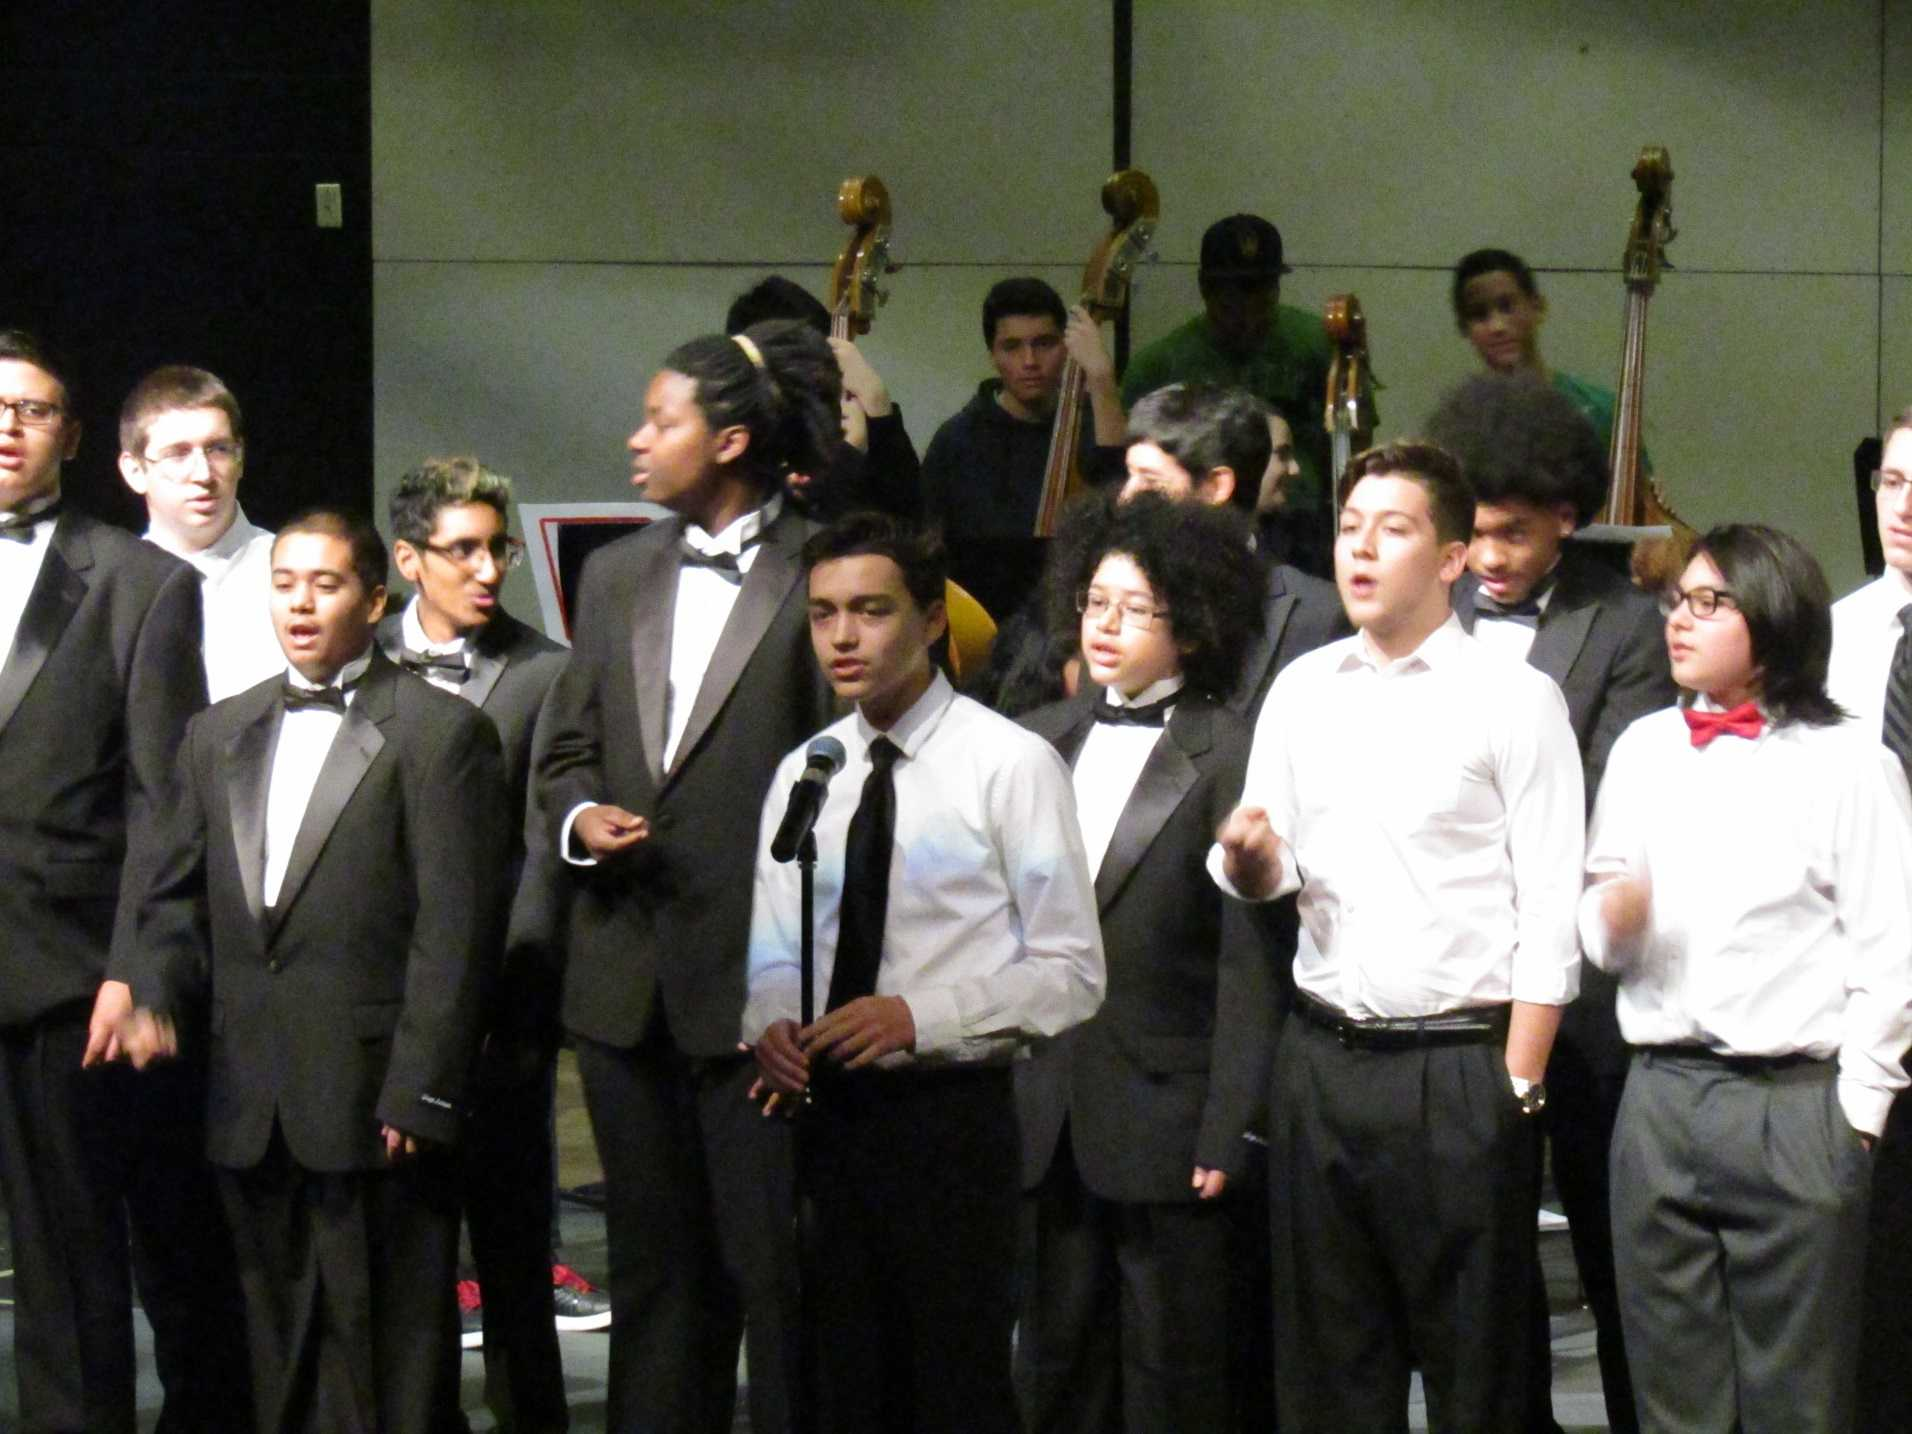 Students perform as part of the choral and instrumental music concert preview on December 1